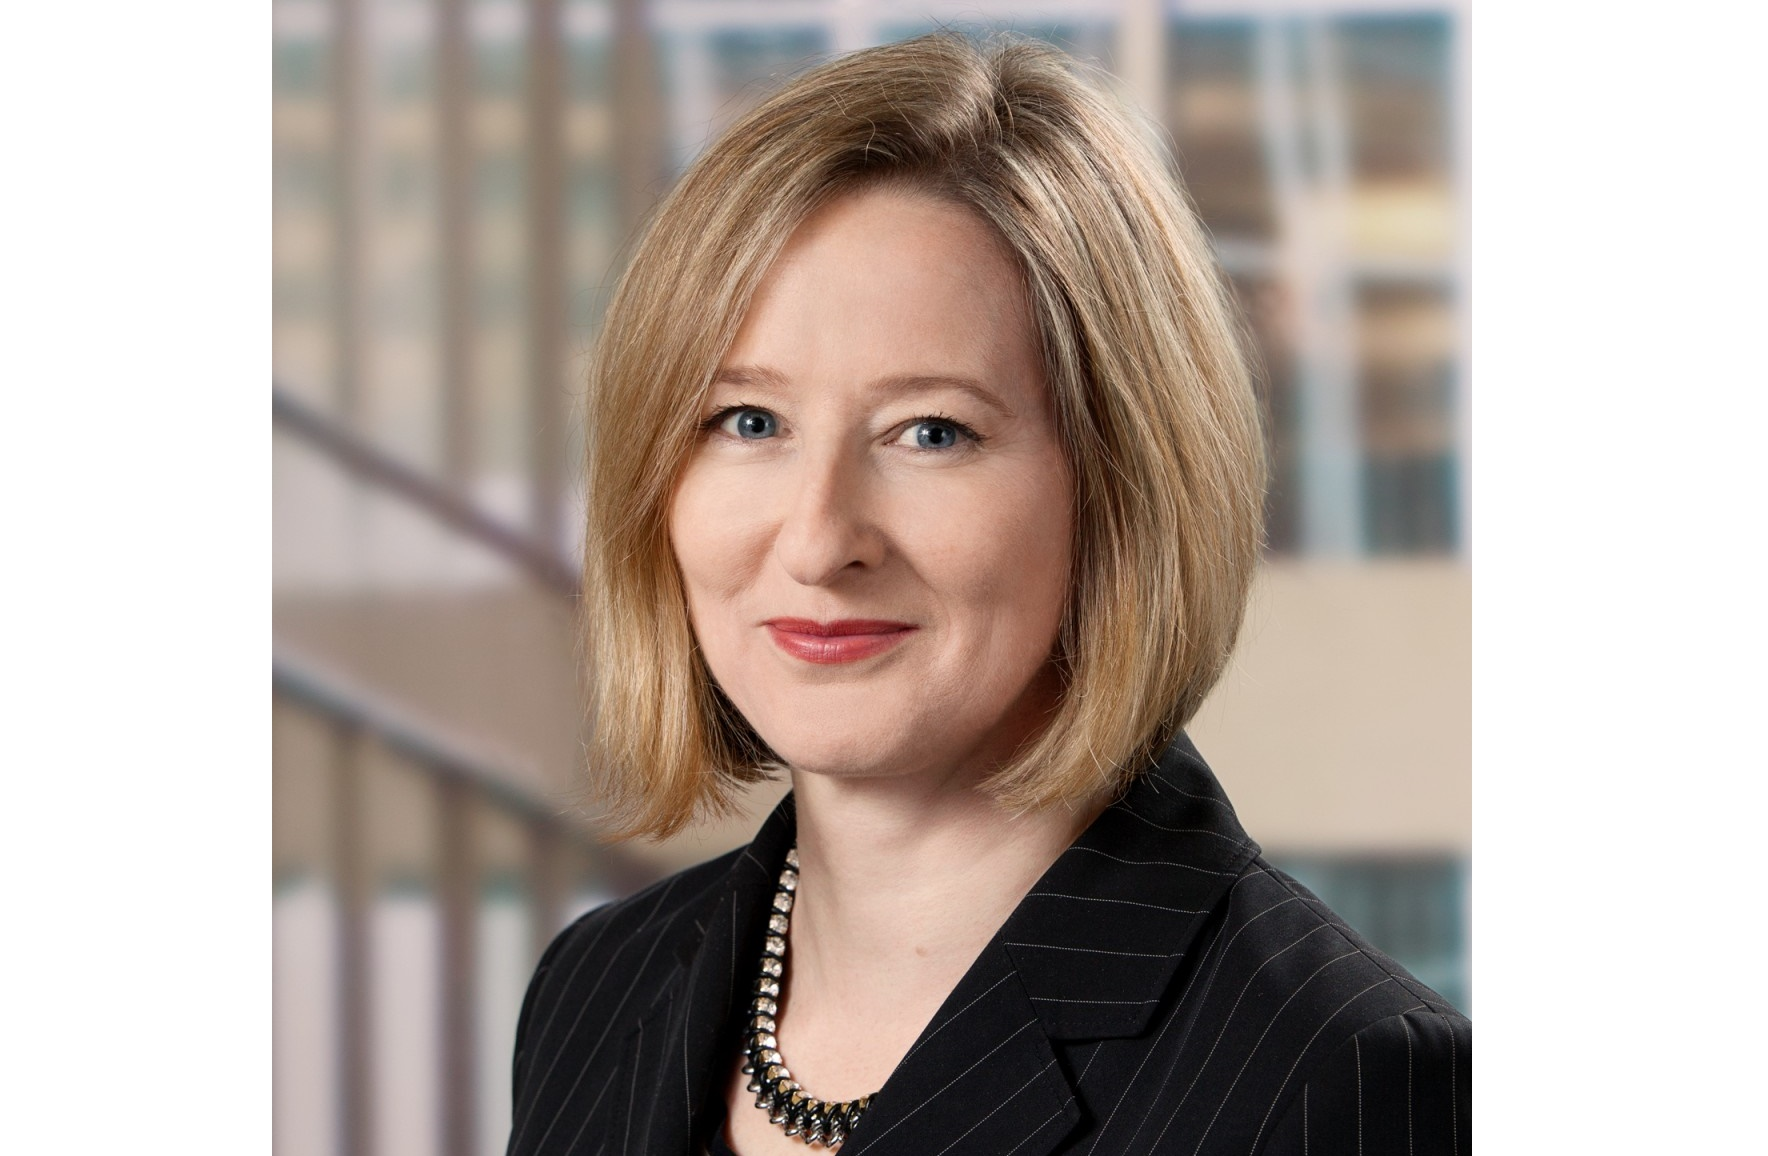 Bank of Canada Senior Deputy Governor Carolyn Wilkins